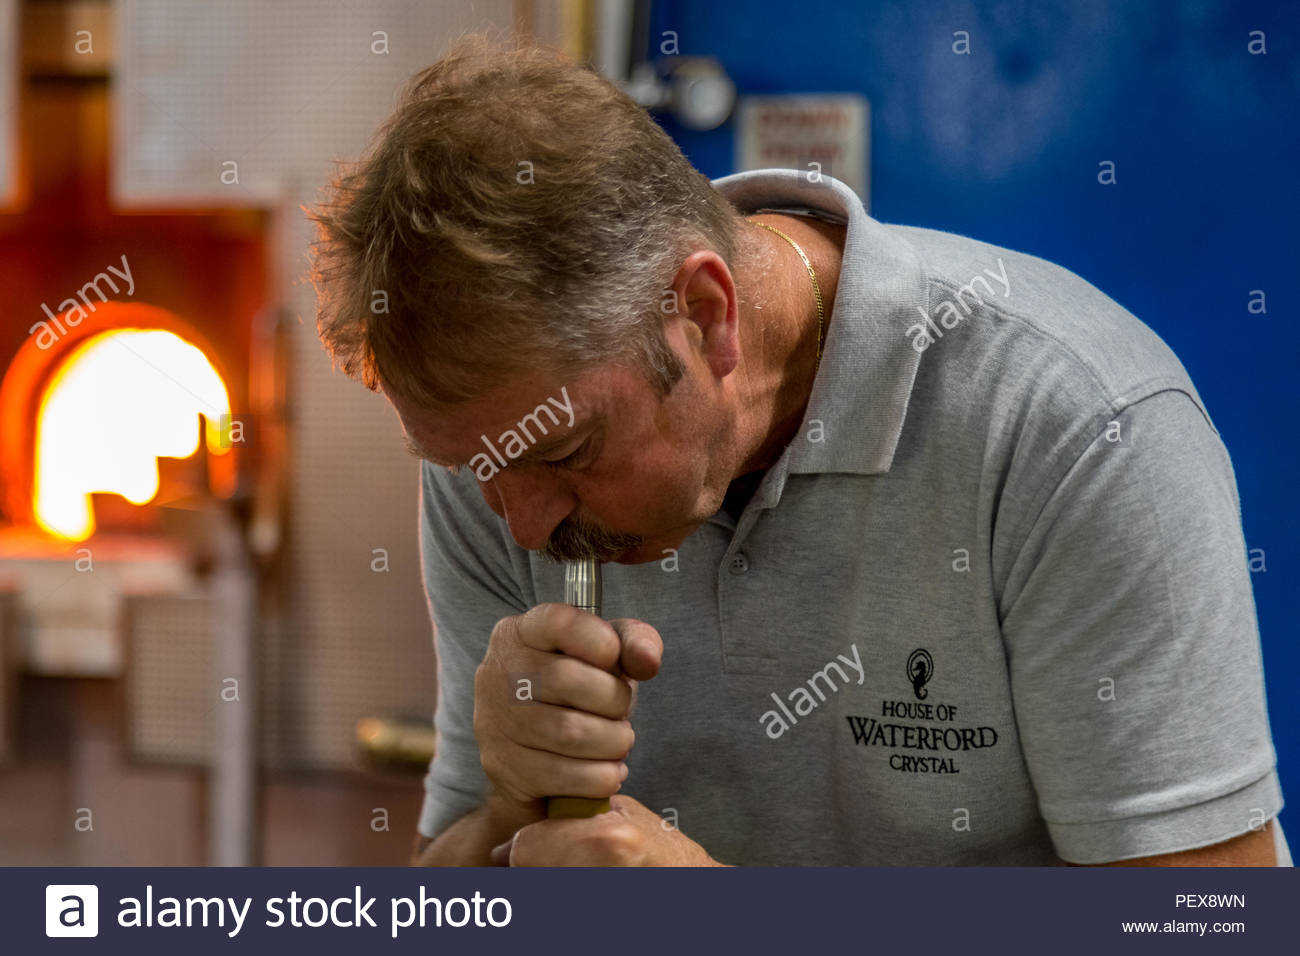 Workers in the Waterford Crystal factory in the Republic of Ireland. A workman blows a block of gathered block of molten glass into a mould - Stock Image